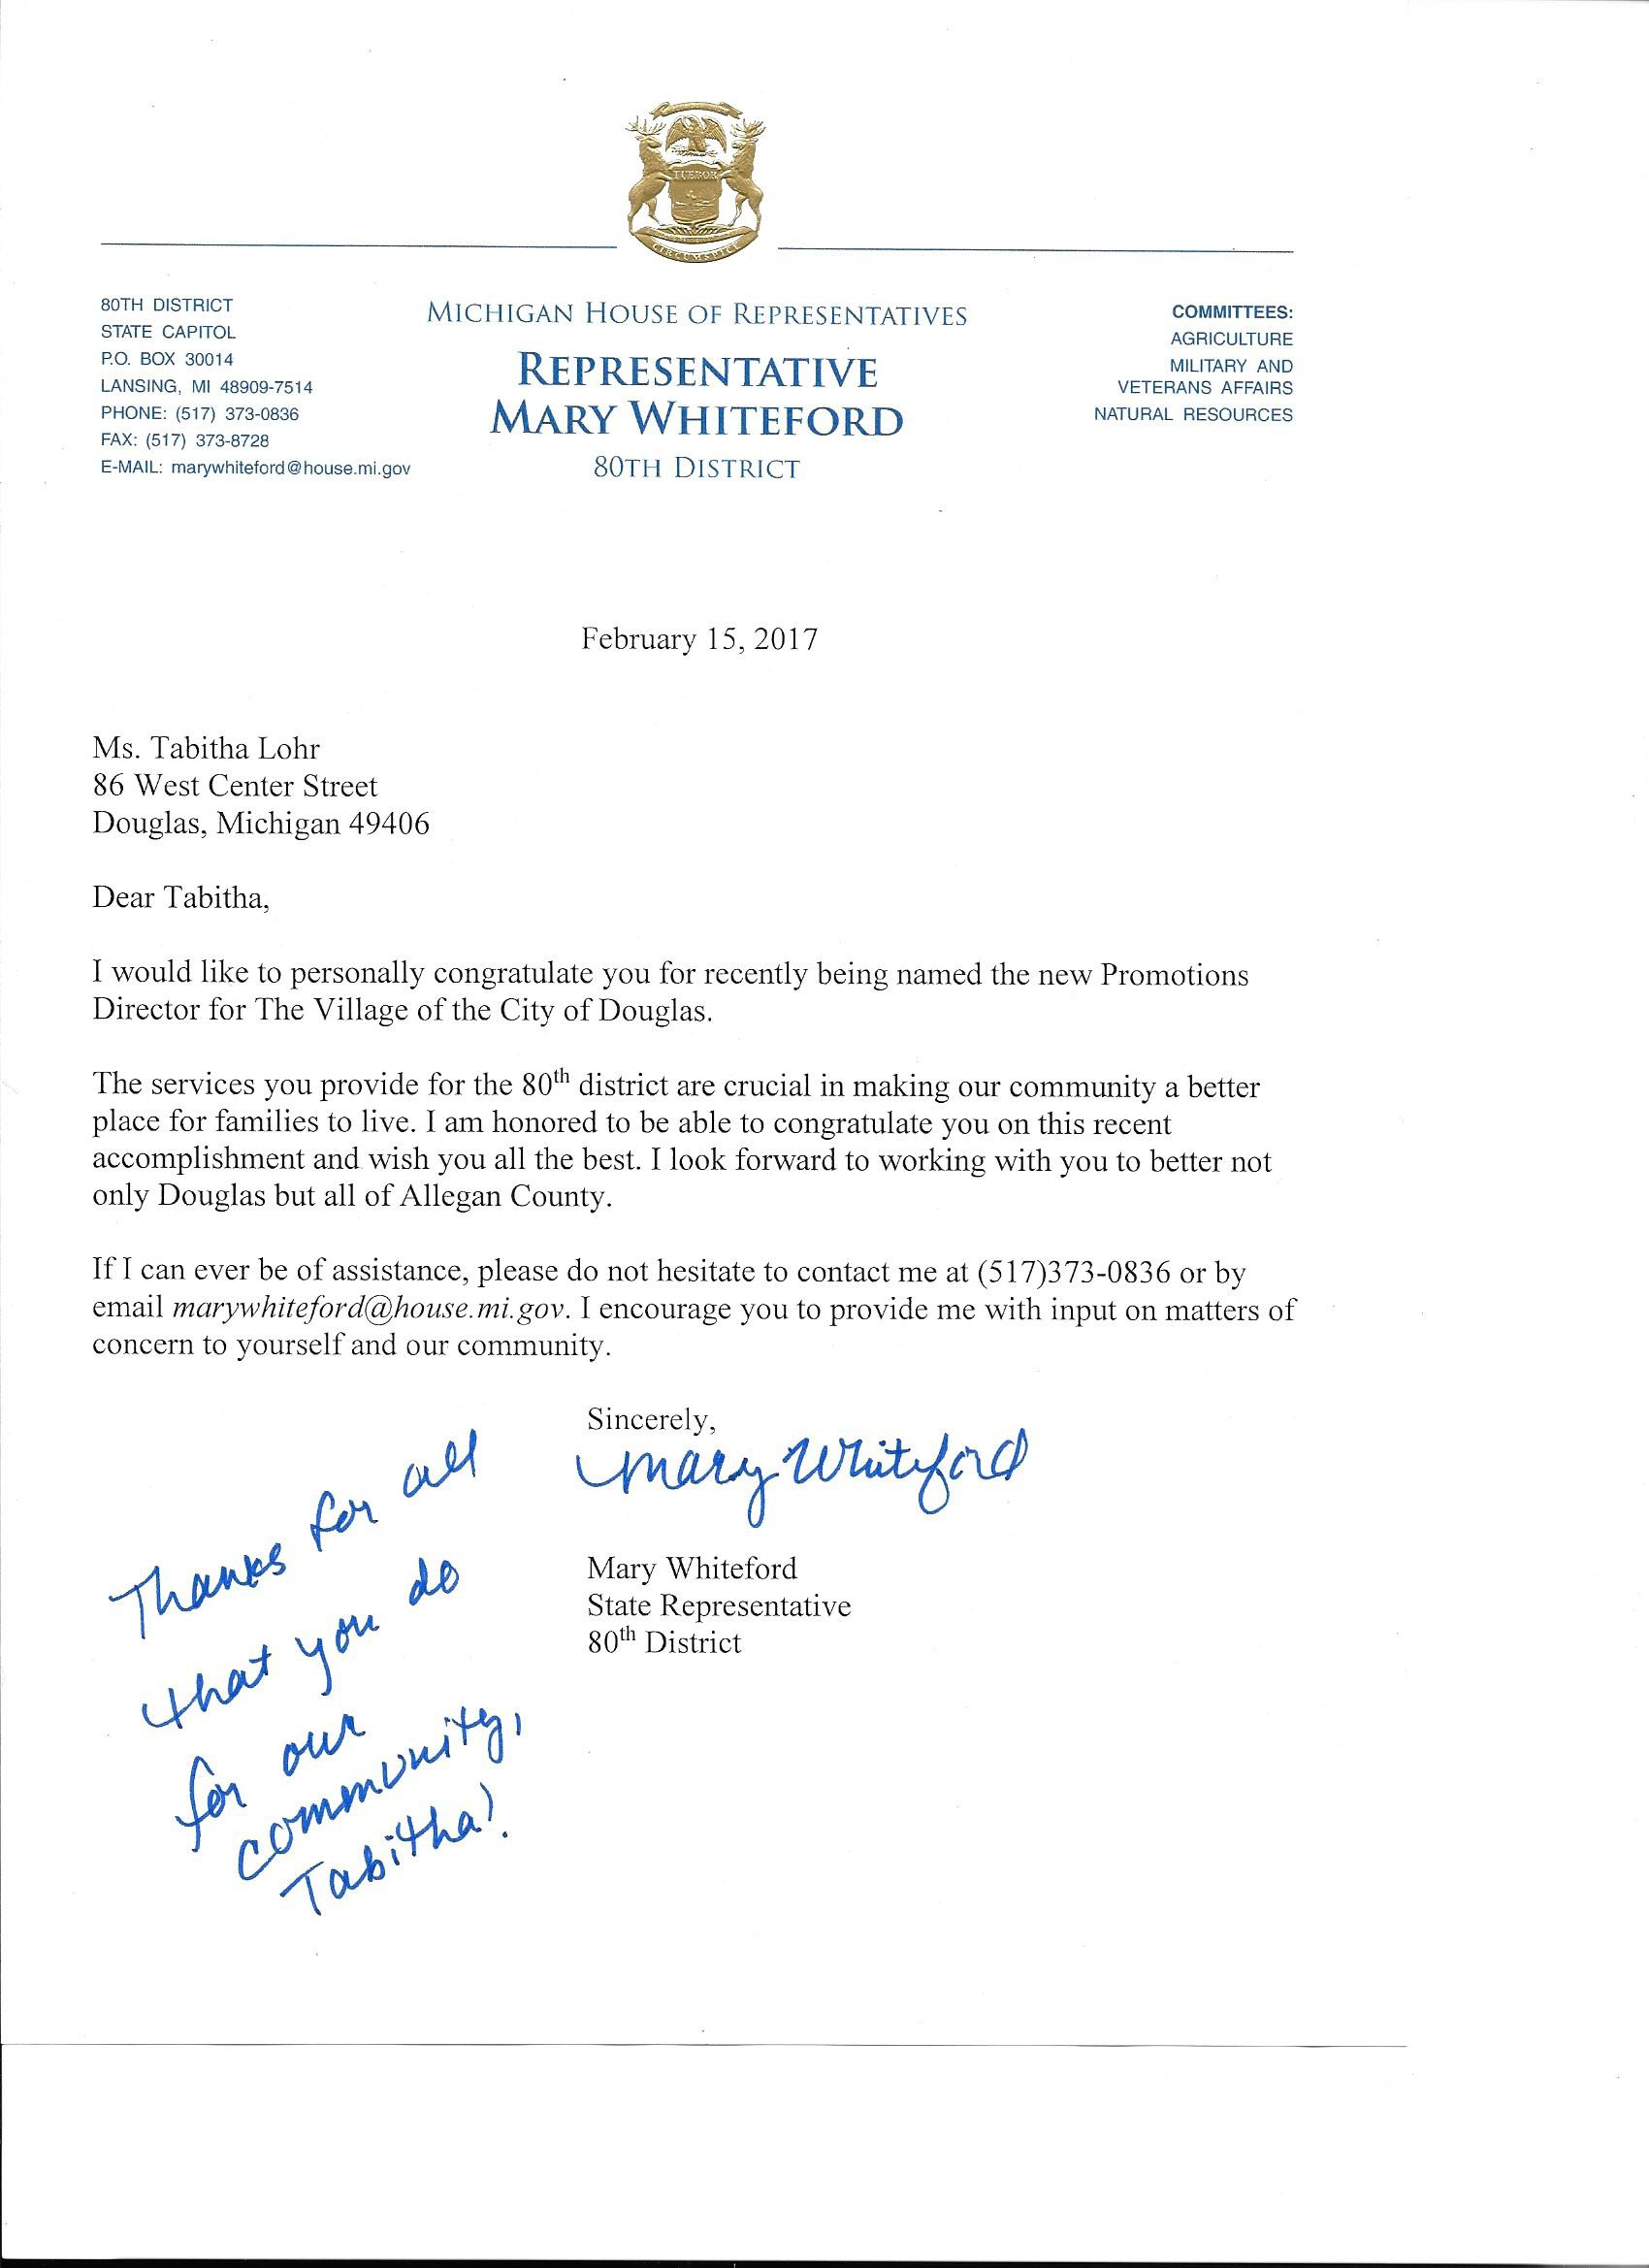 Lohr Receives Personal Letter From Michigan State House